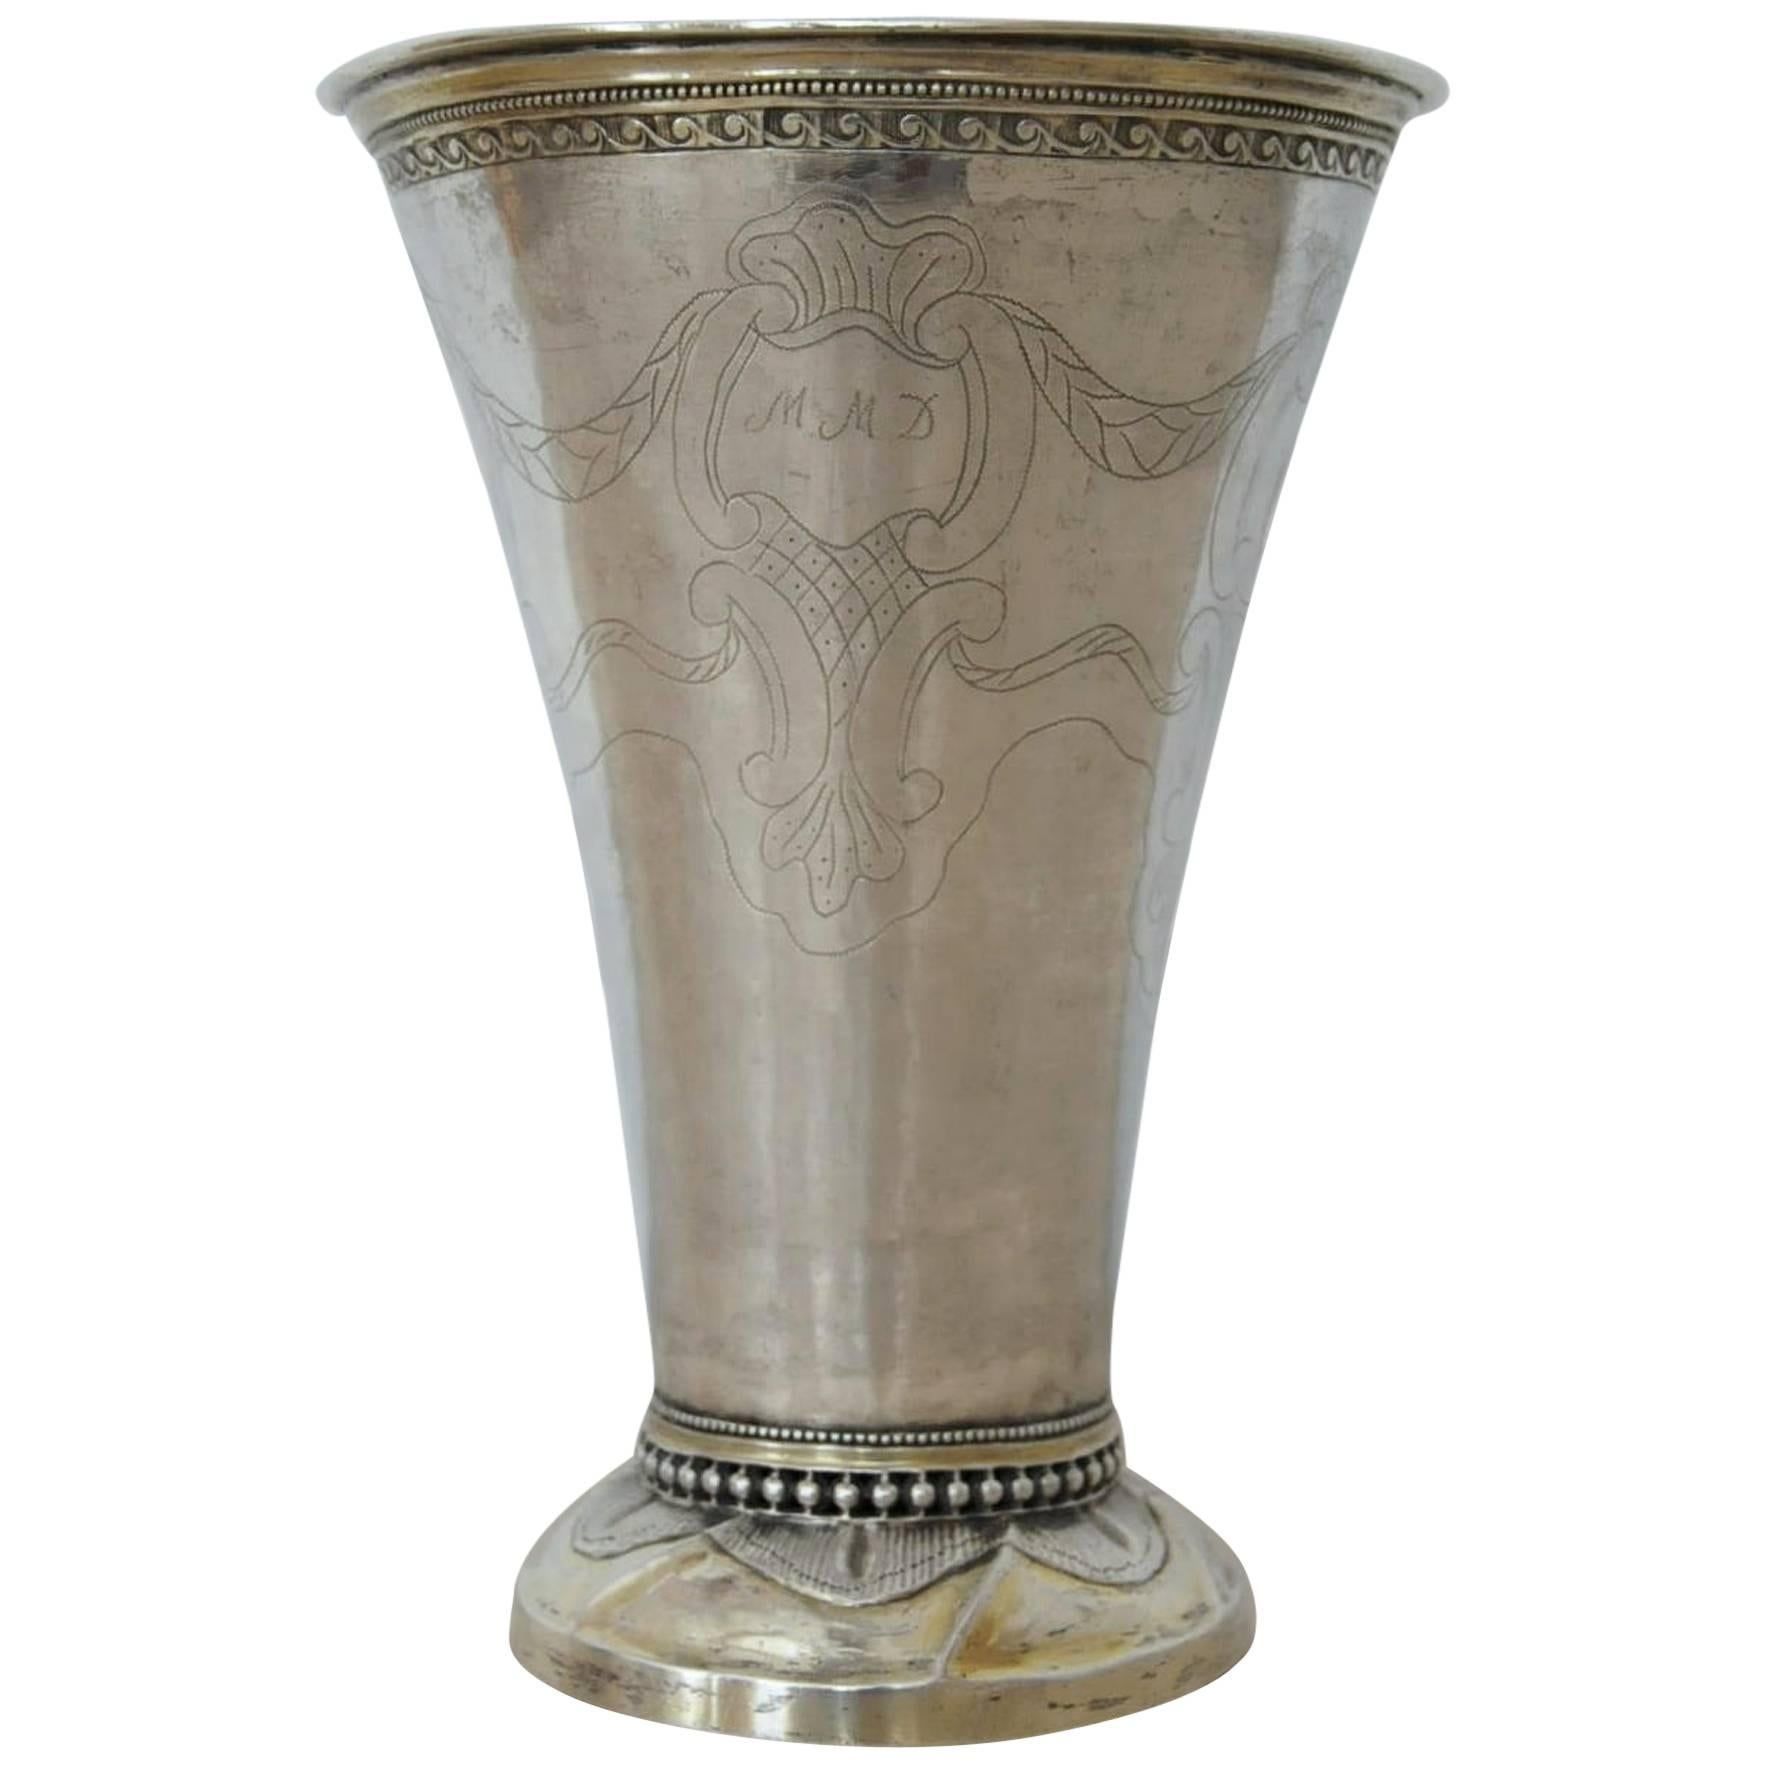 Gustavian Vases and Vessels